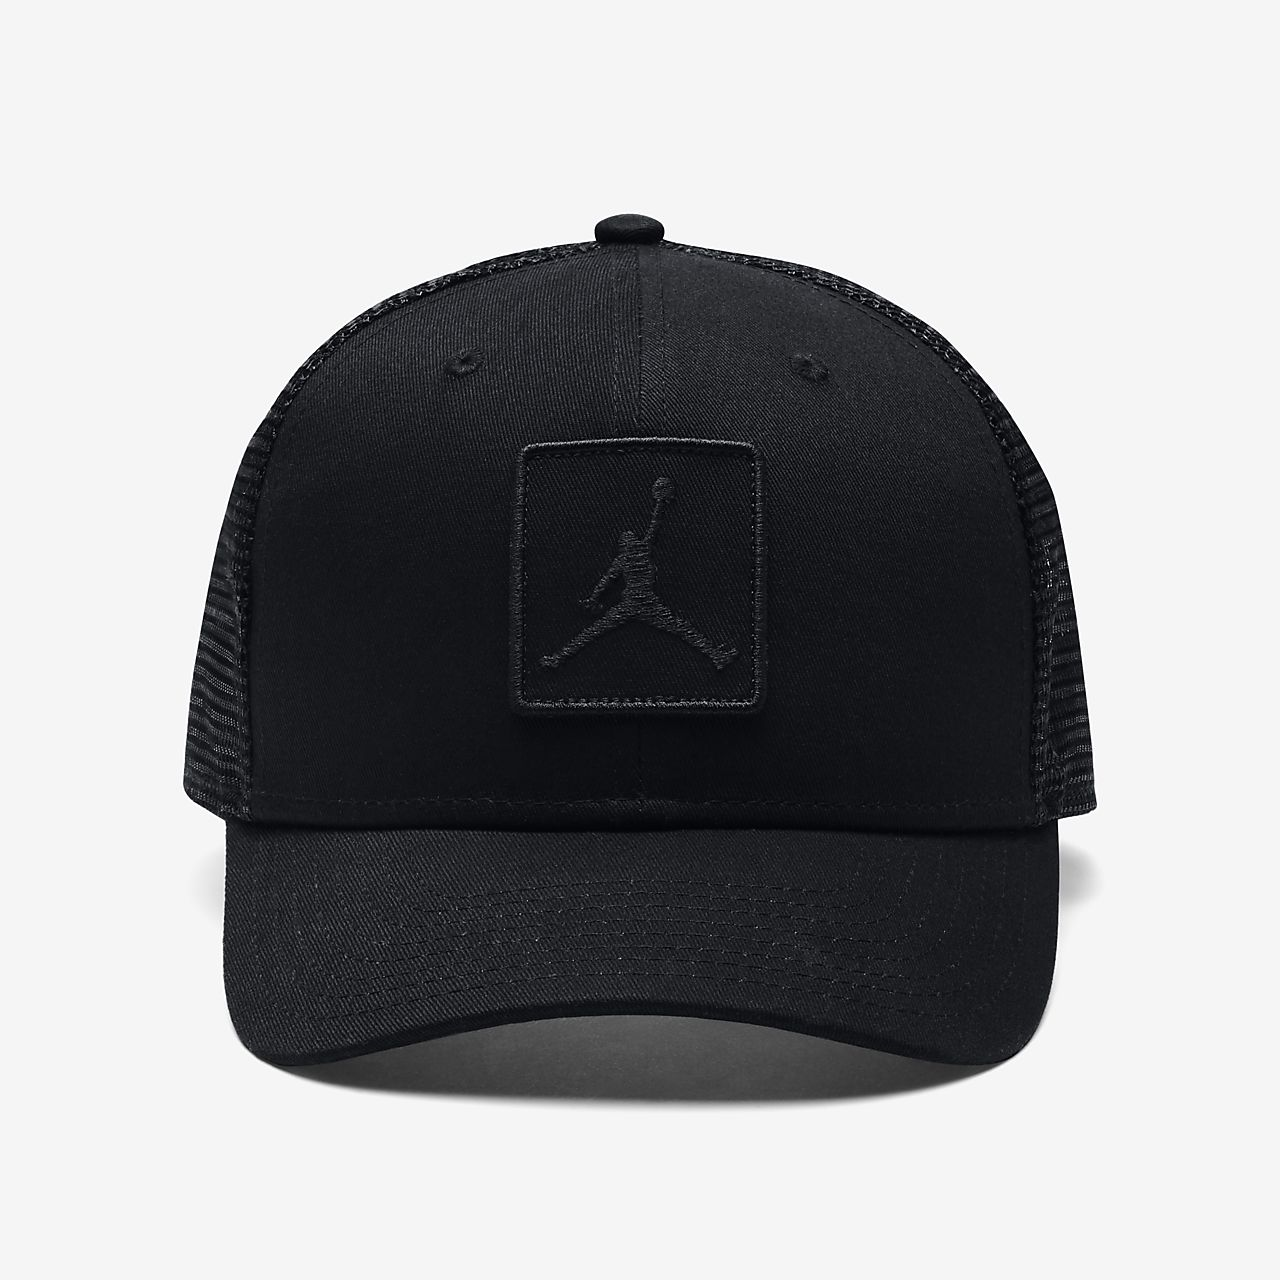 01f8856bc52e5 Jordan Jumpman Classic99 Trucker Adjustable Hat. Nike.com